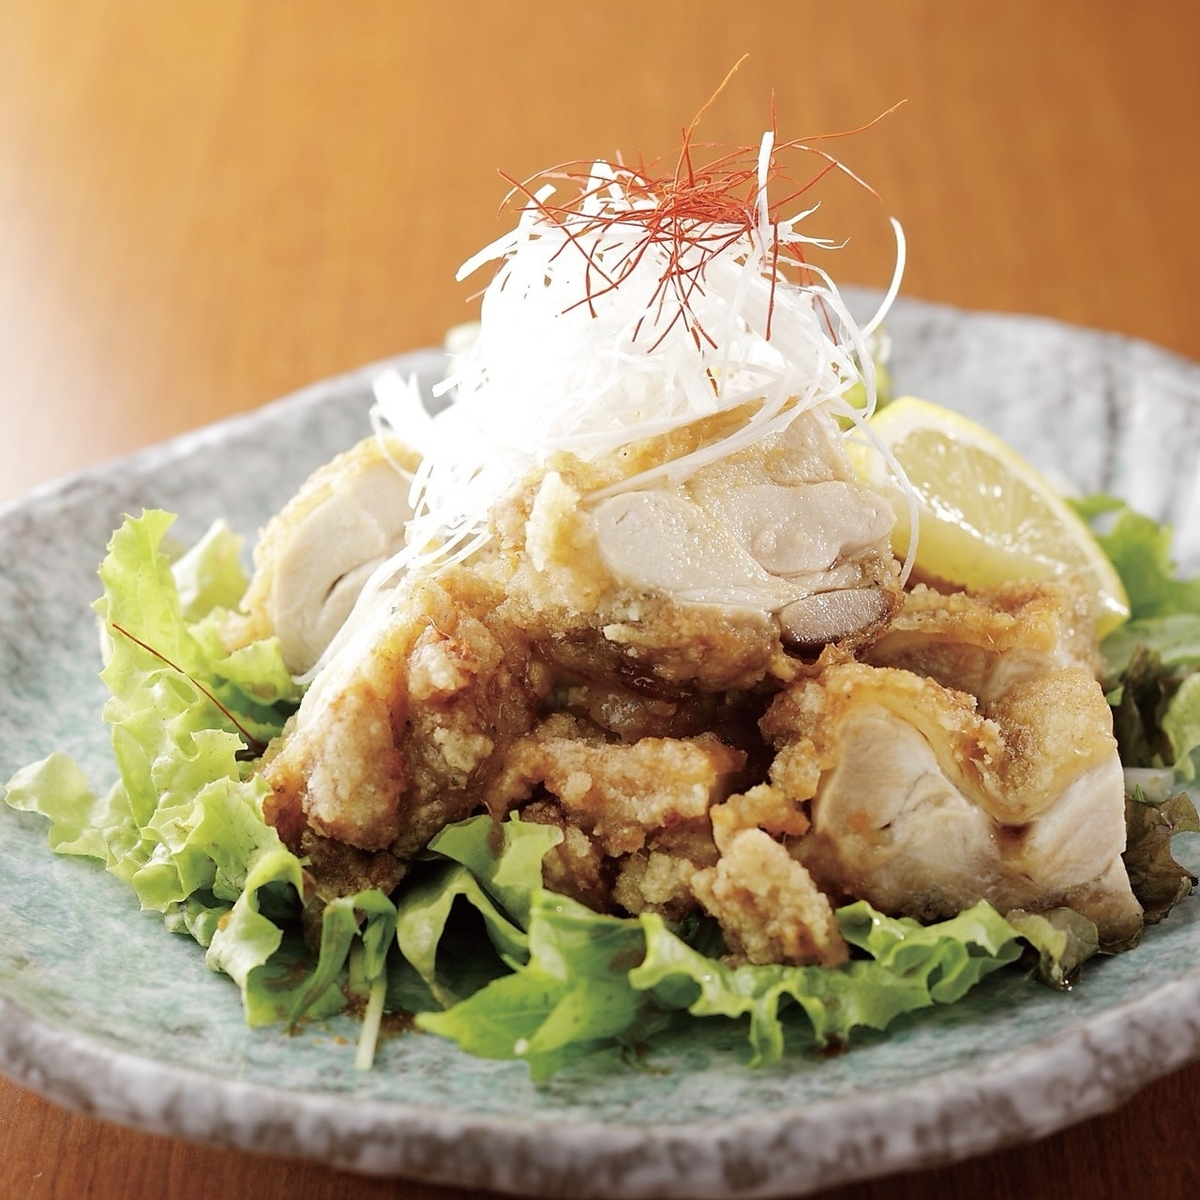 Fried chicken with Tatsuta fried flavor sauce